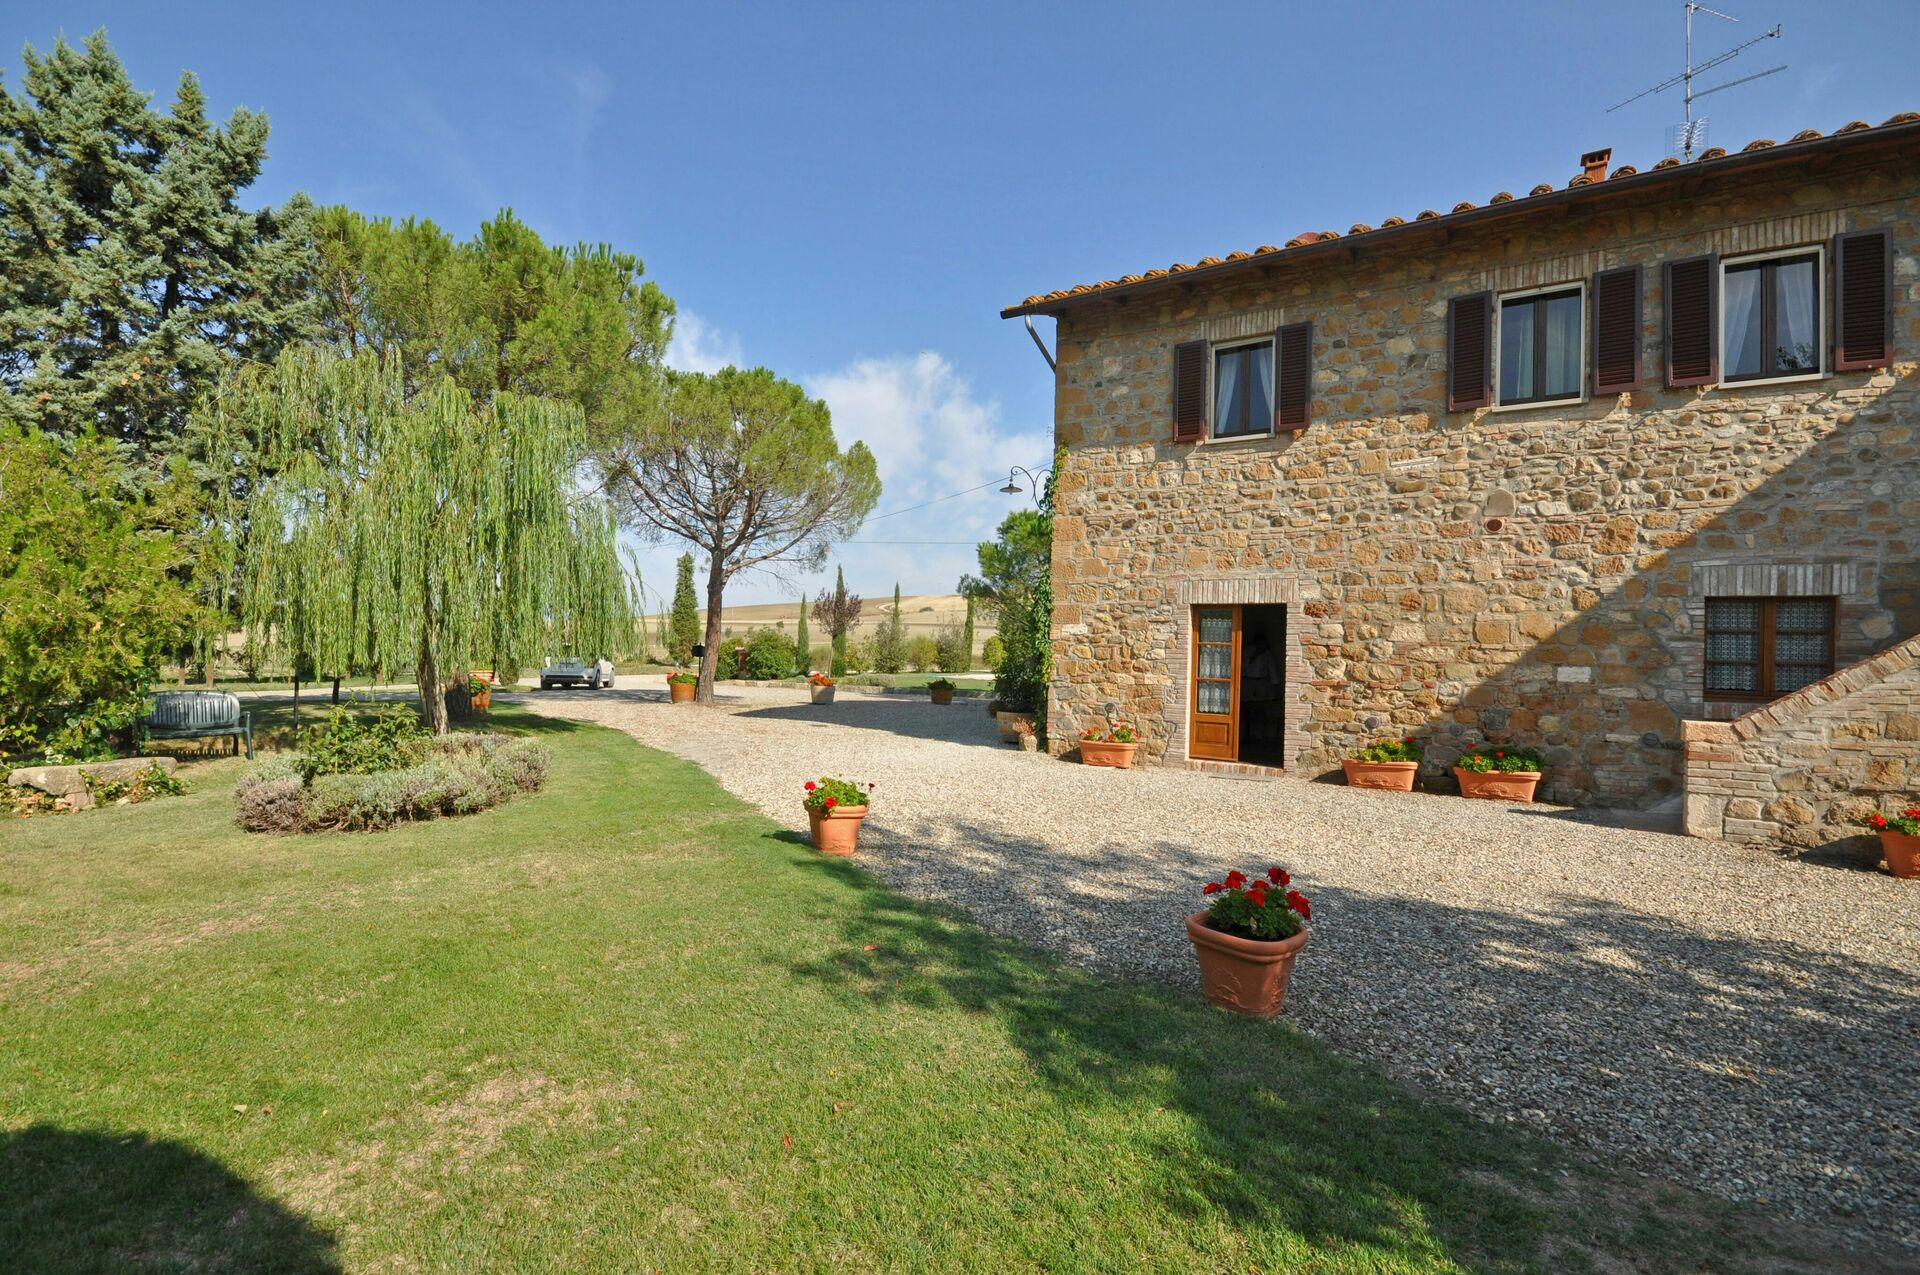 Country house in tuscany for rent villa cassia for Rent a house in tuscany